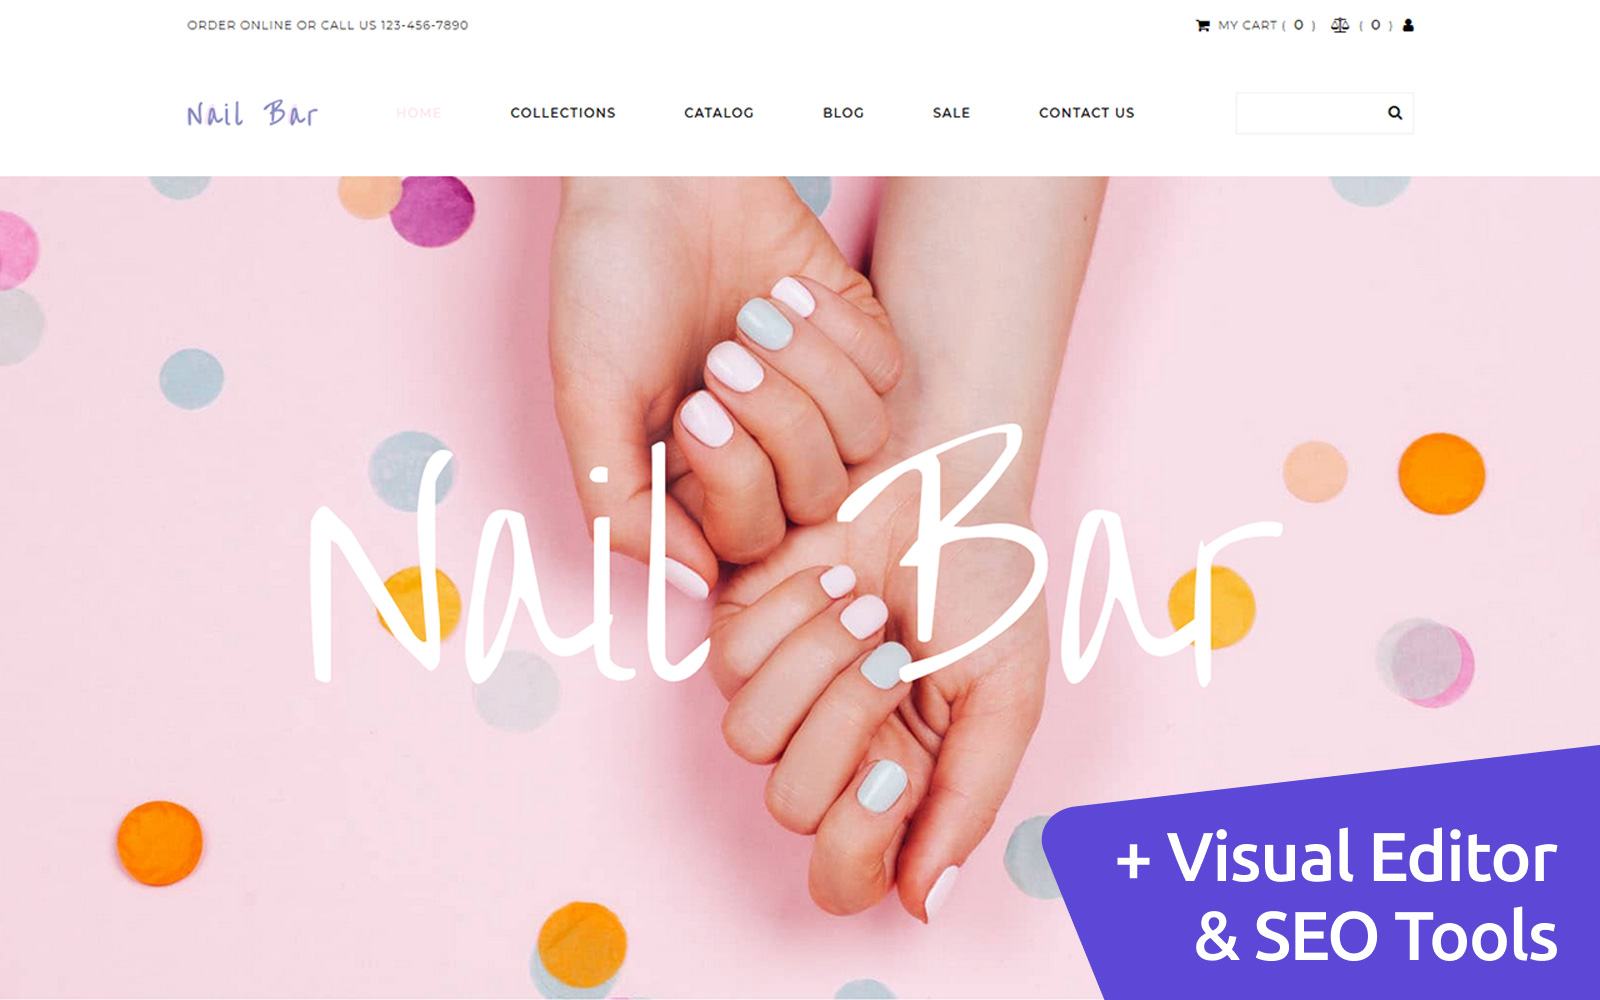 Nail Bar - Cosmetics Store MotoCMS Ecommerce Template